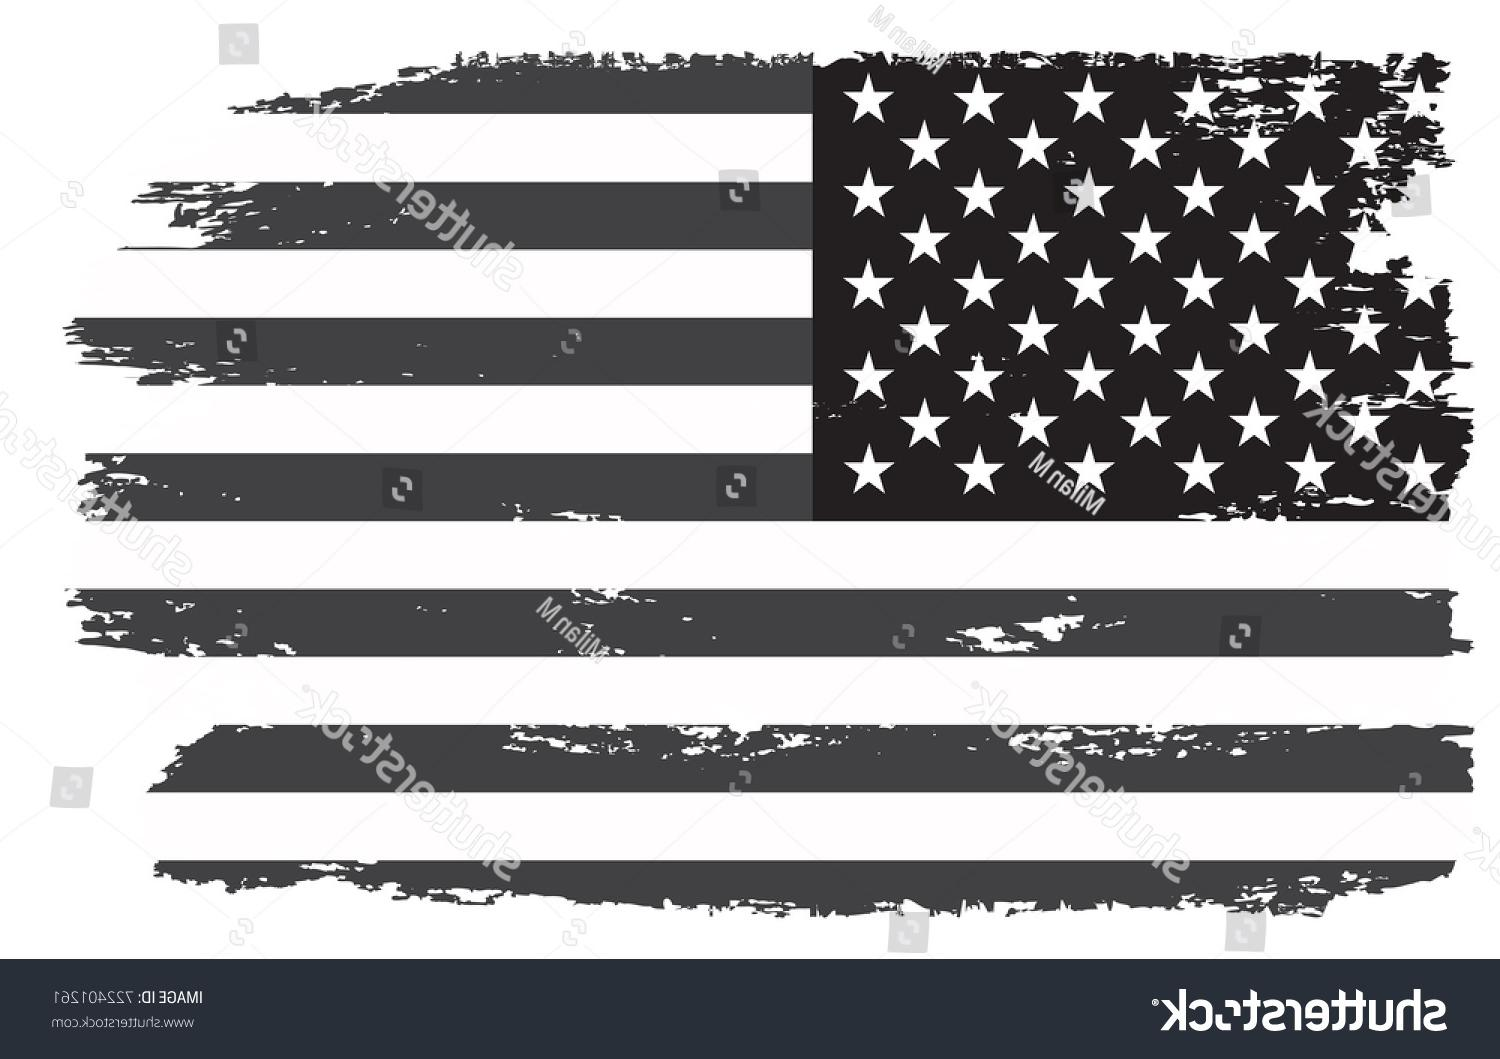 1500x1059 Best Stock Vector Grunge Usa Flag Vintage Black And White American Cdr